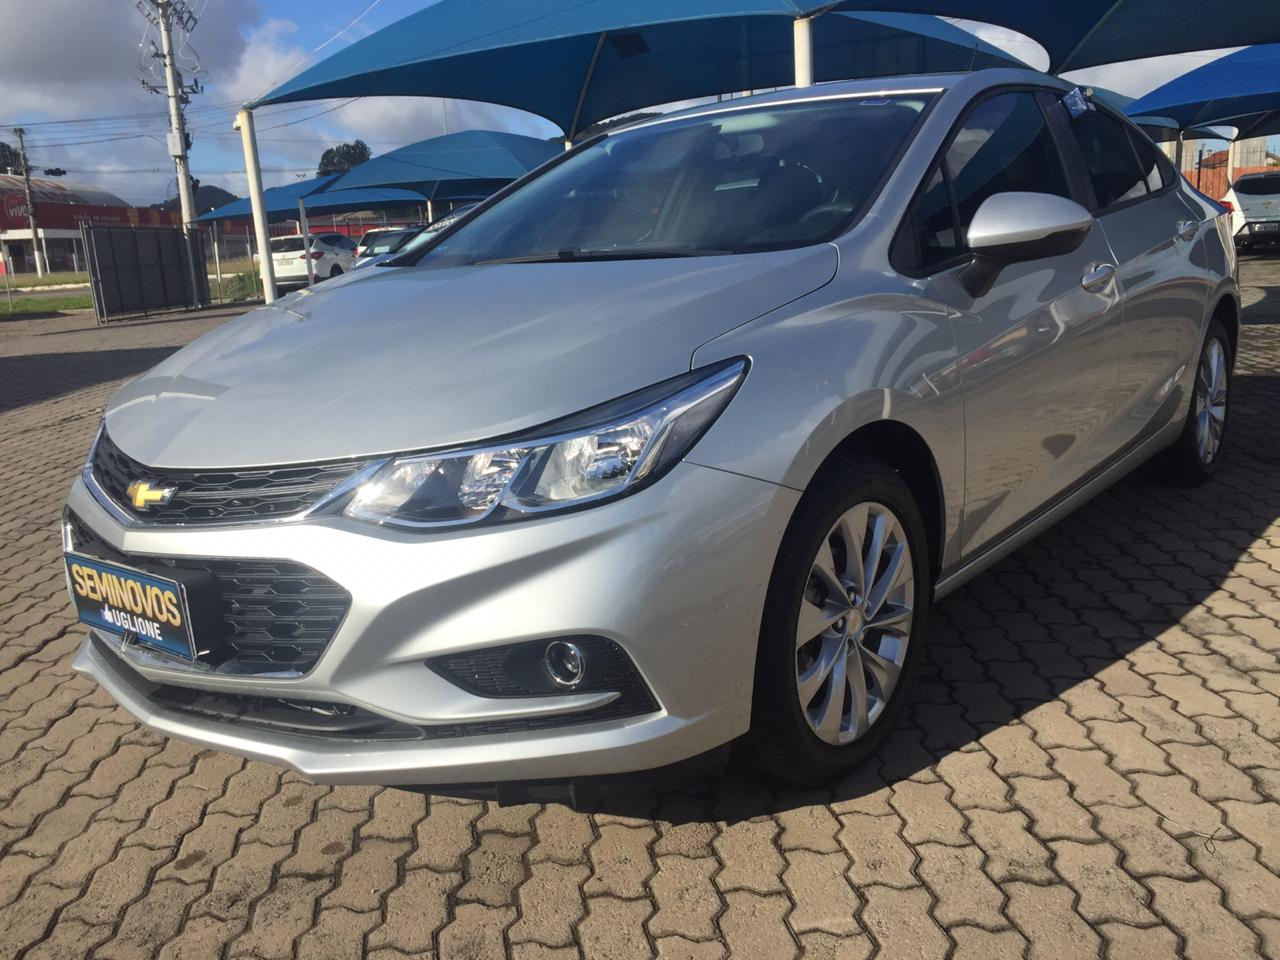 CHEVROLET CRUZE LT TURBO 1.4 2018